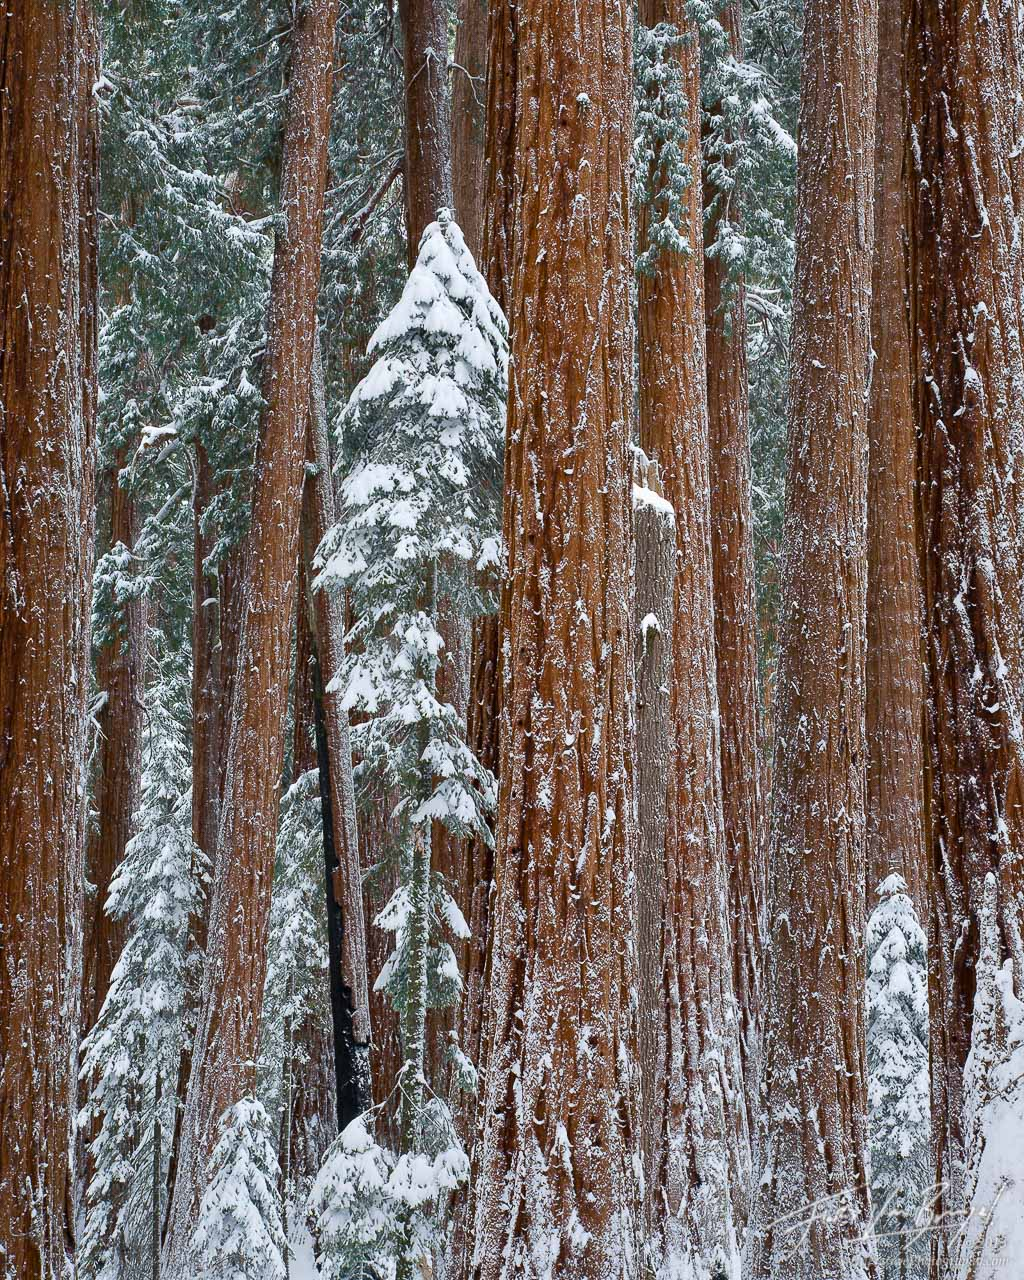 Winter Snow Giant Sequoias, Sequoia National Park, California, grove, photo